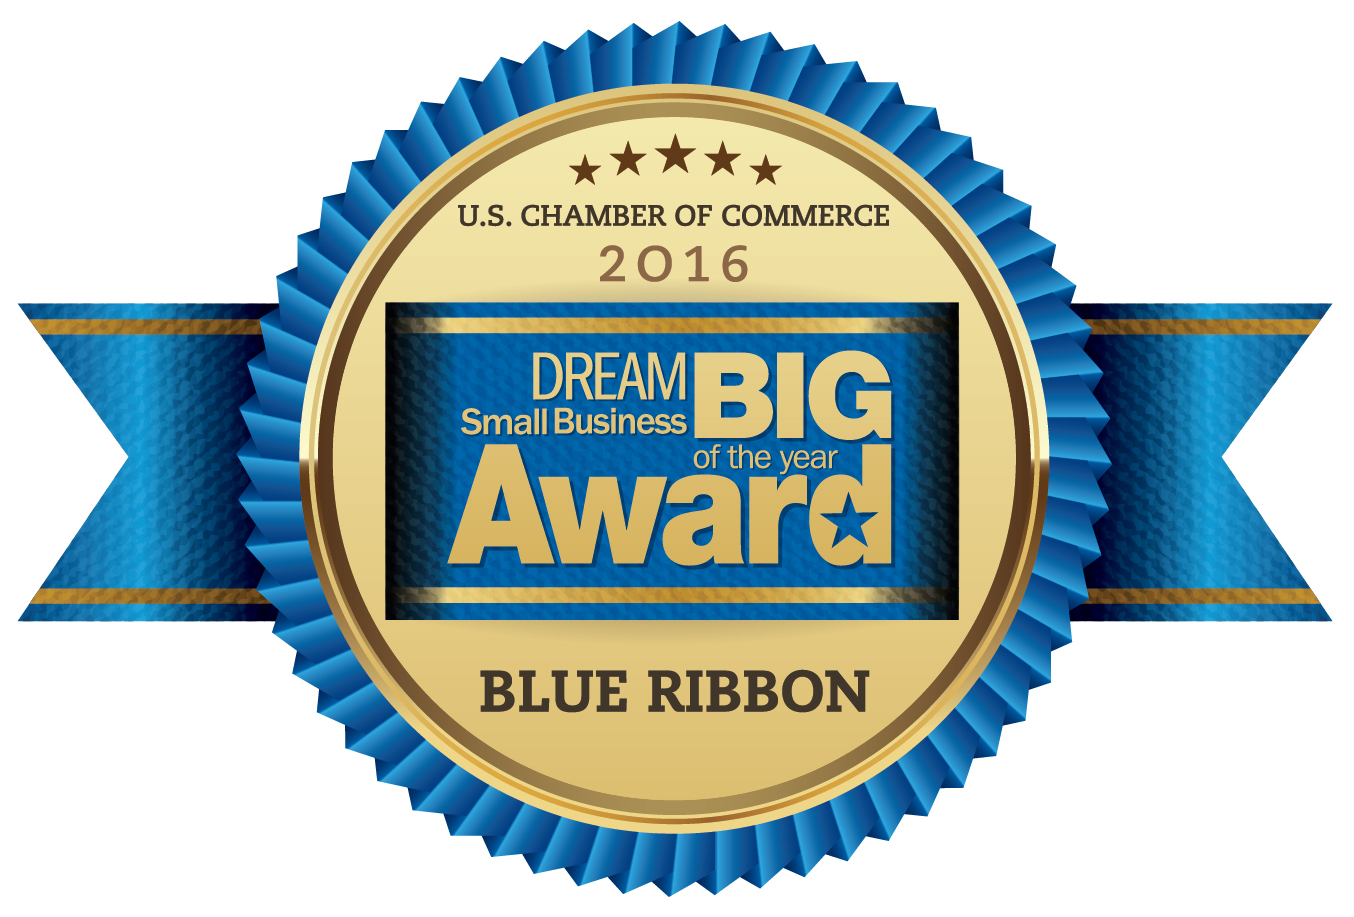 2016-dreambig-blueribbon-300res-0.jpg